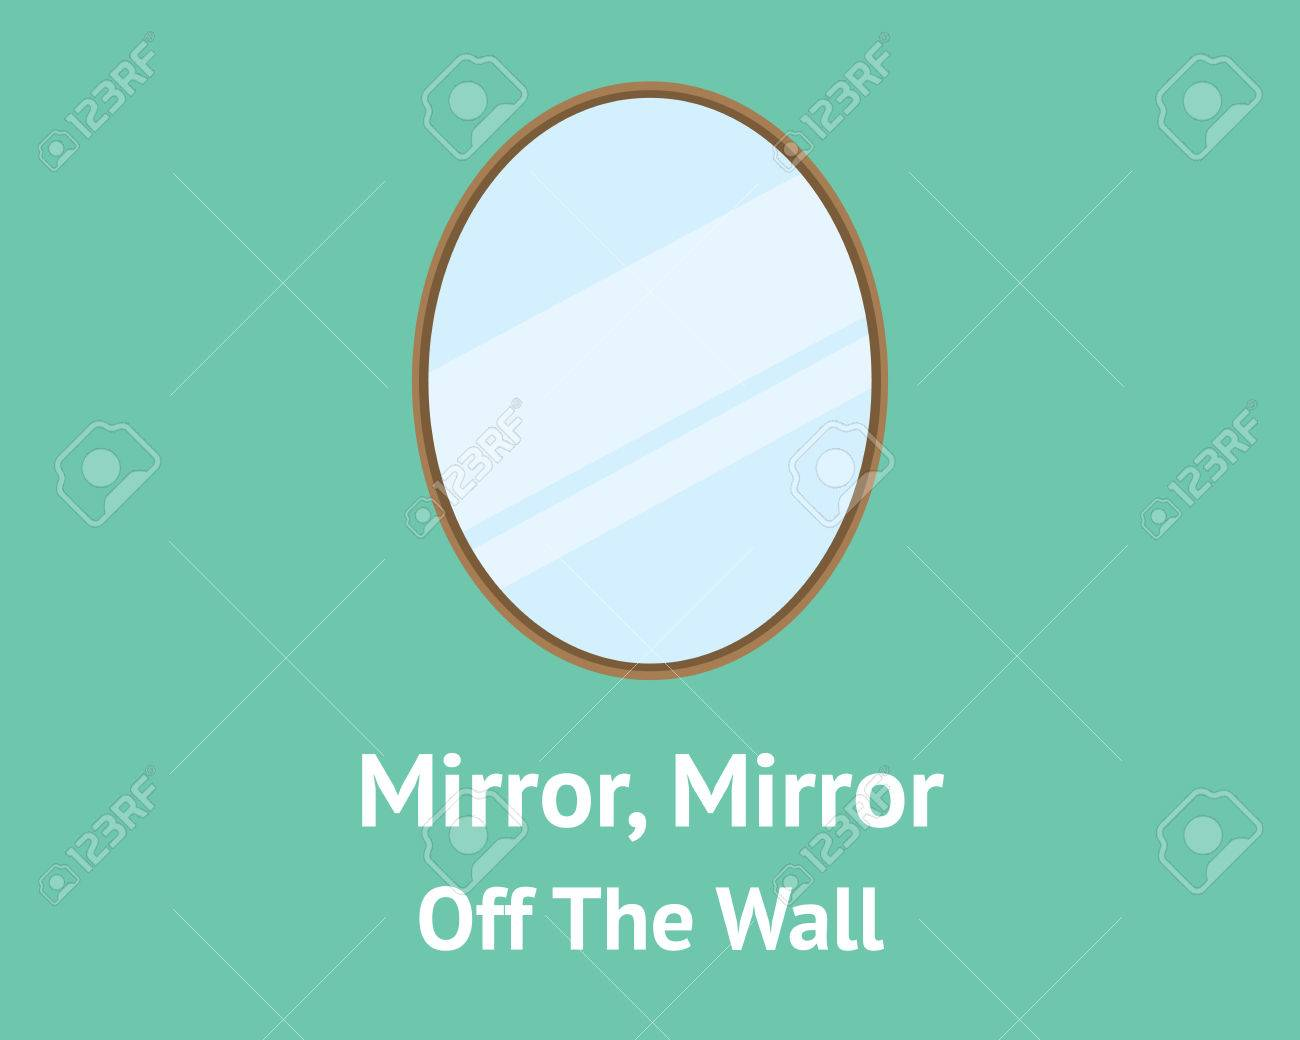 Mirror Mirror On The Wall Quote | Mirror Mirror Off The Wall Quotes Concept With Mirror Isolated